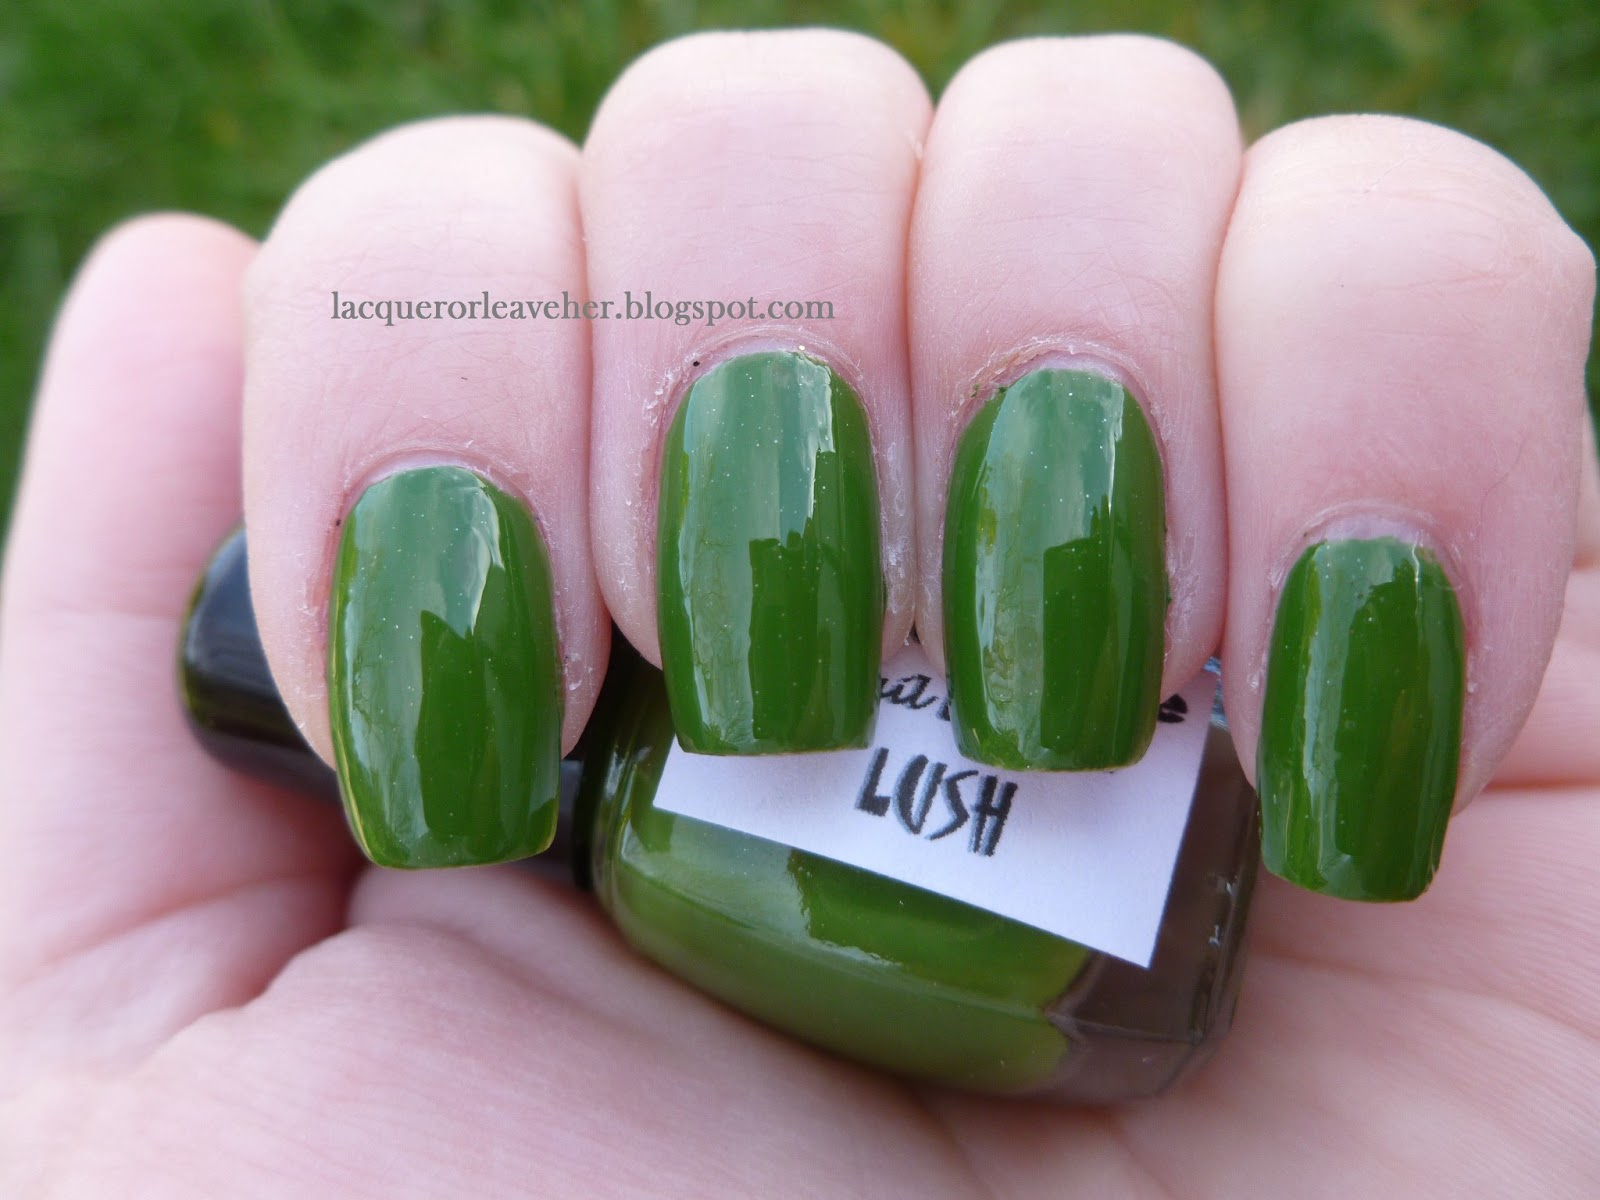 Green Lacquer Spray Paint